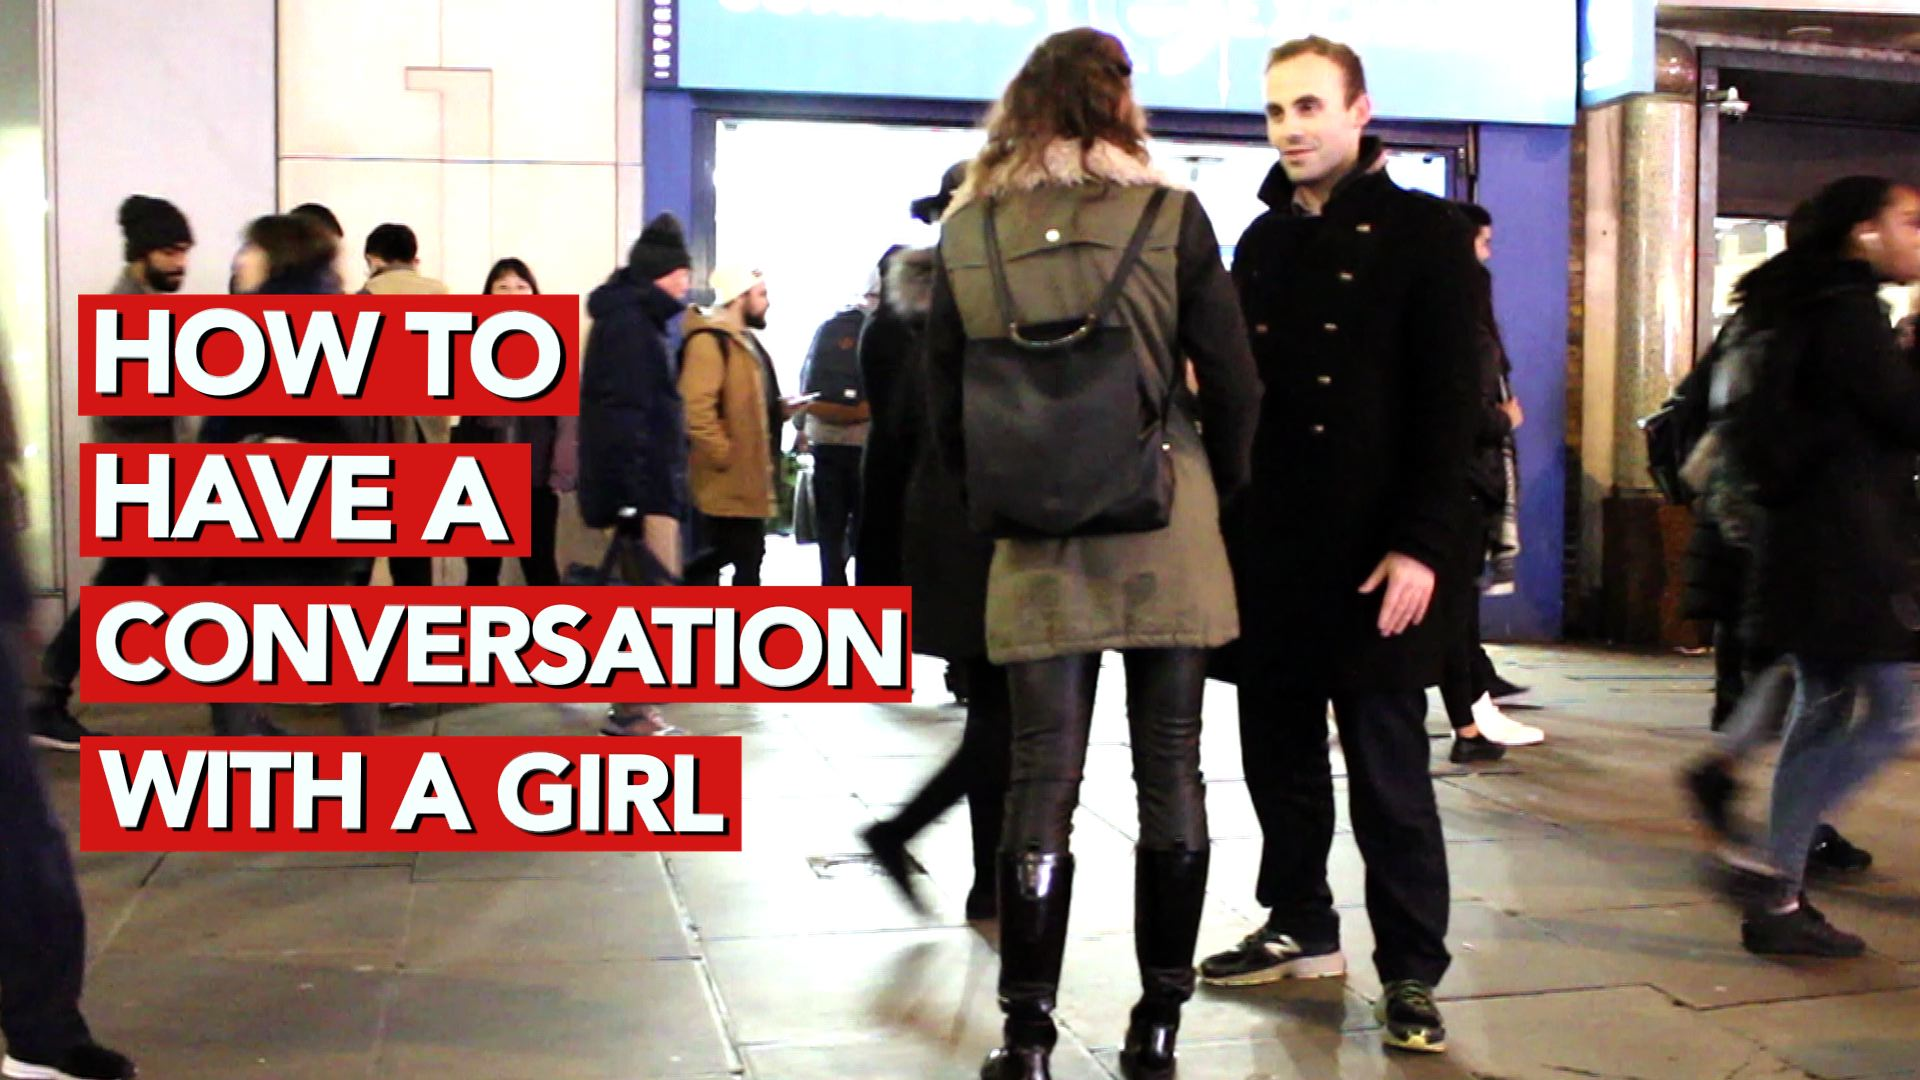 1-How to have a conversation with a girl